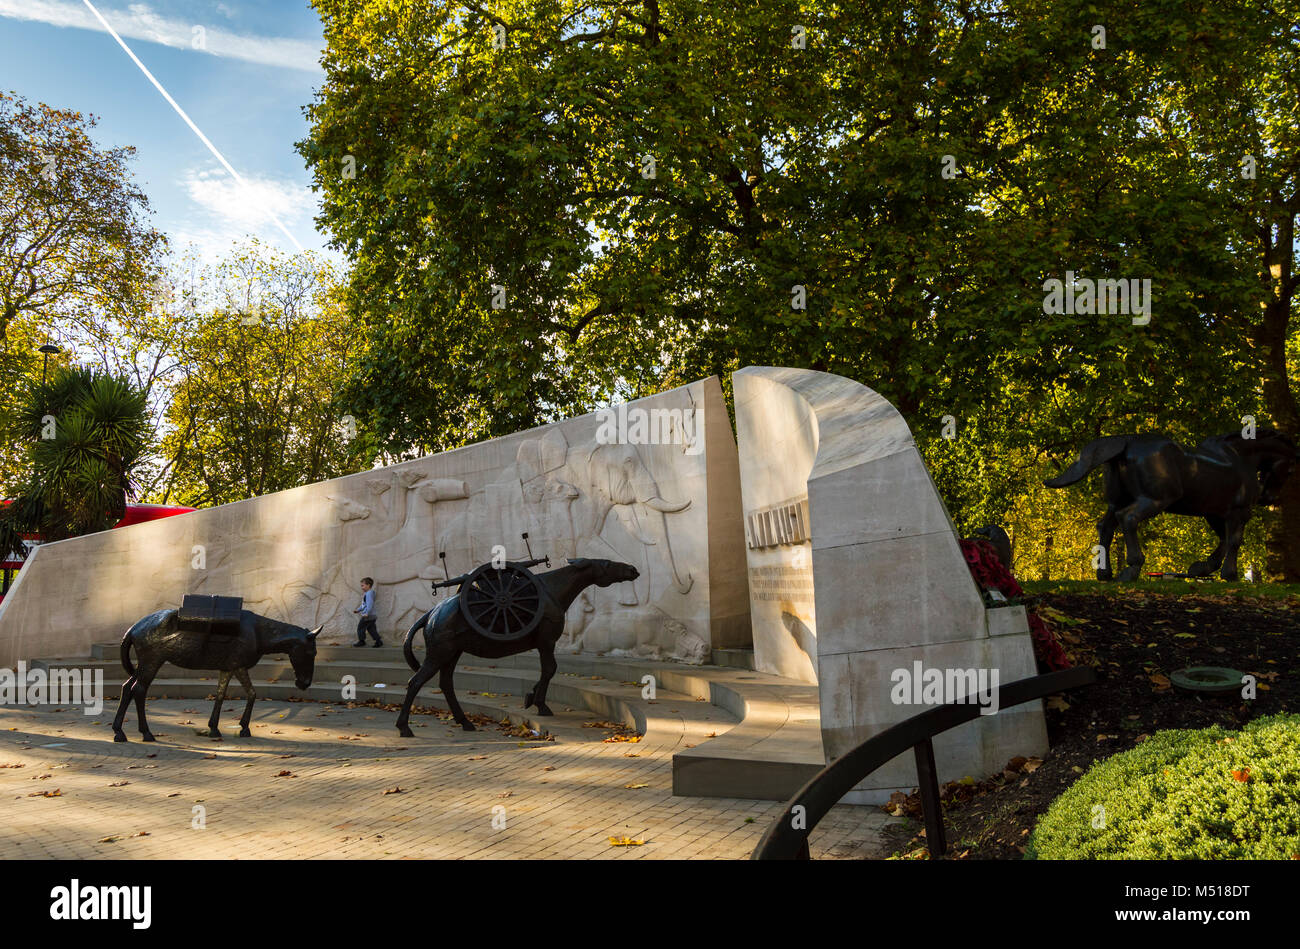 London, ENGLAND - October 25 2017: The Animals in War memorial located on Park Lane. The monument commemorates all - Stock Image